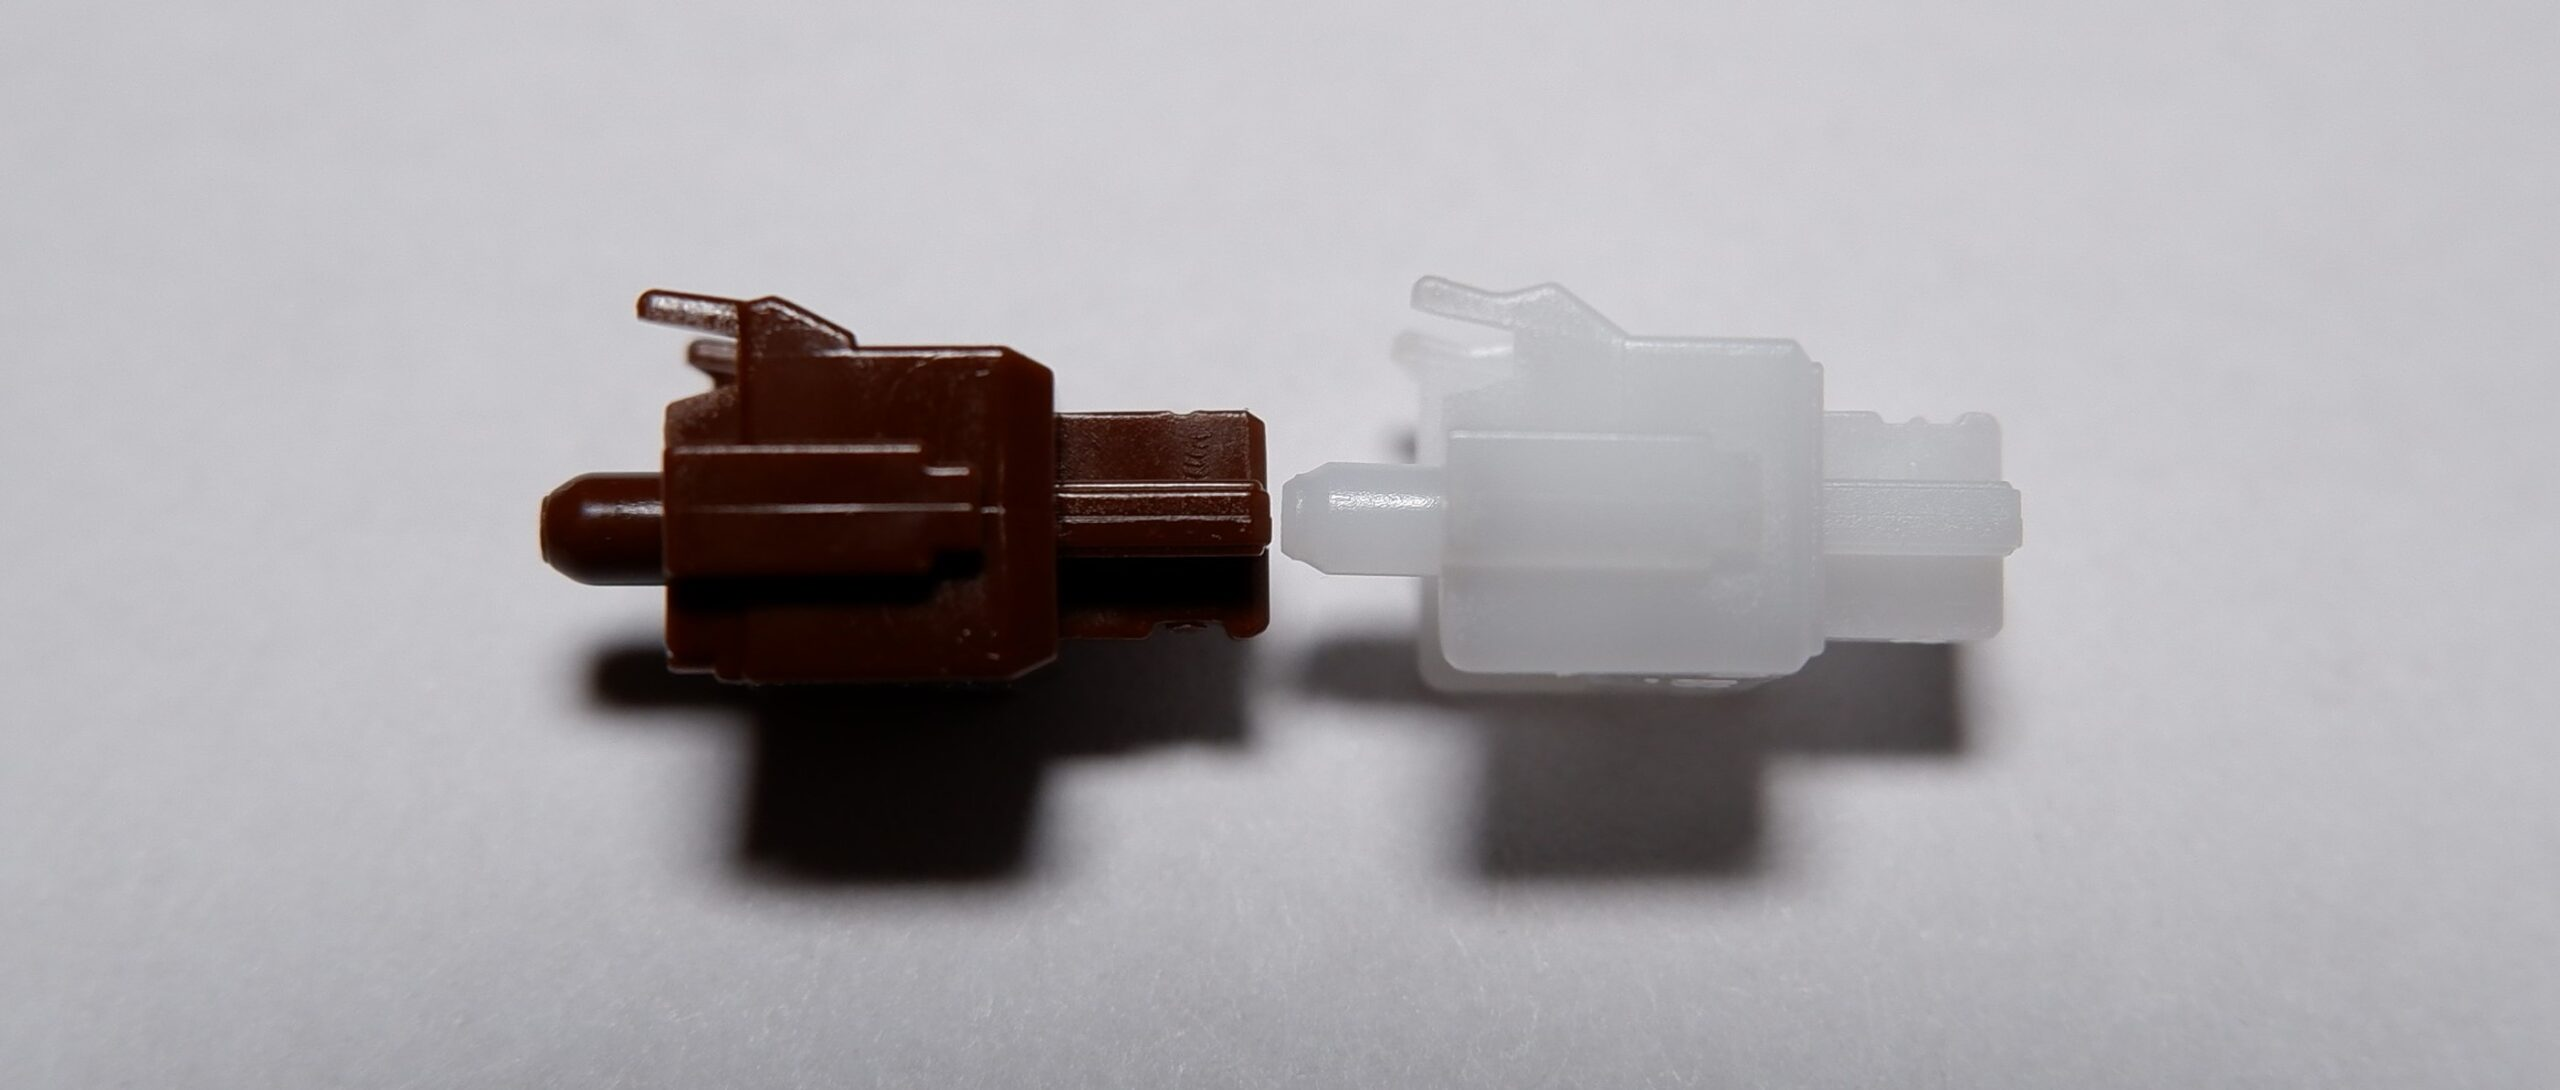 Cherry MX Brown and Cherry MX Clear stem comparison